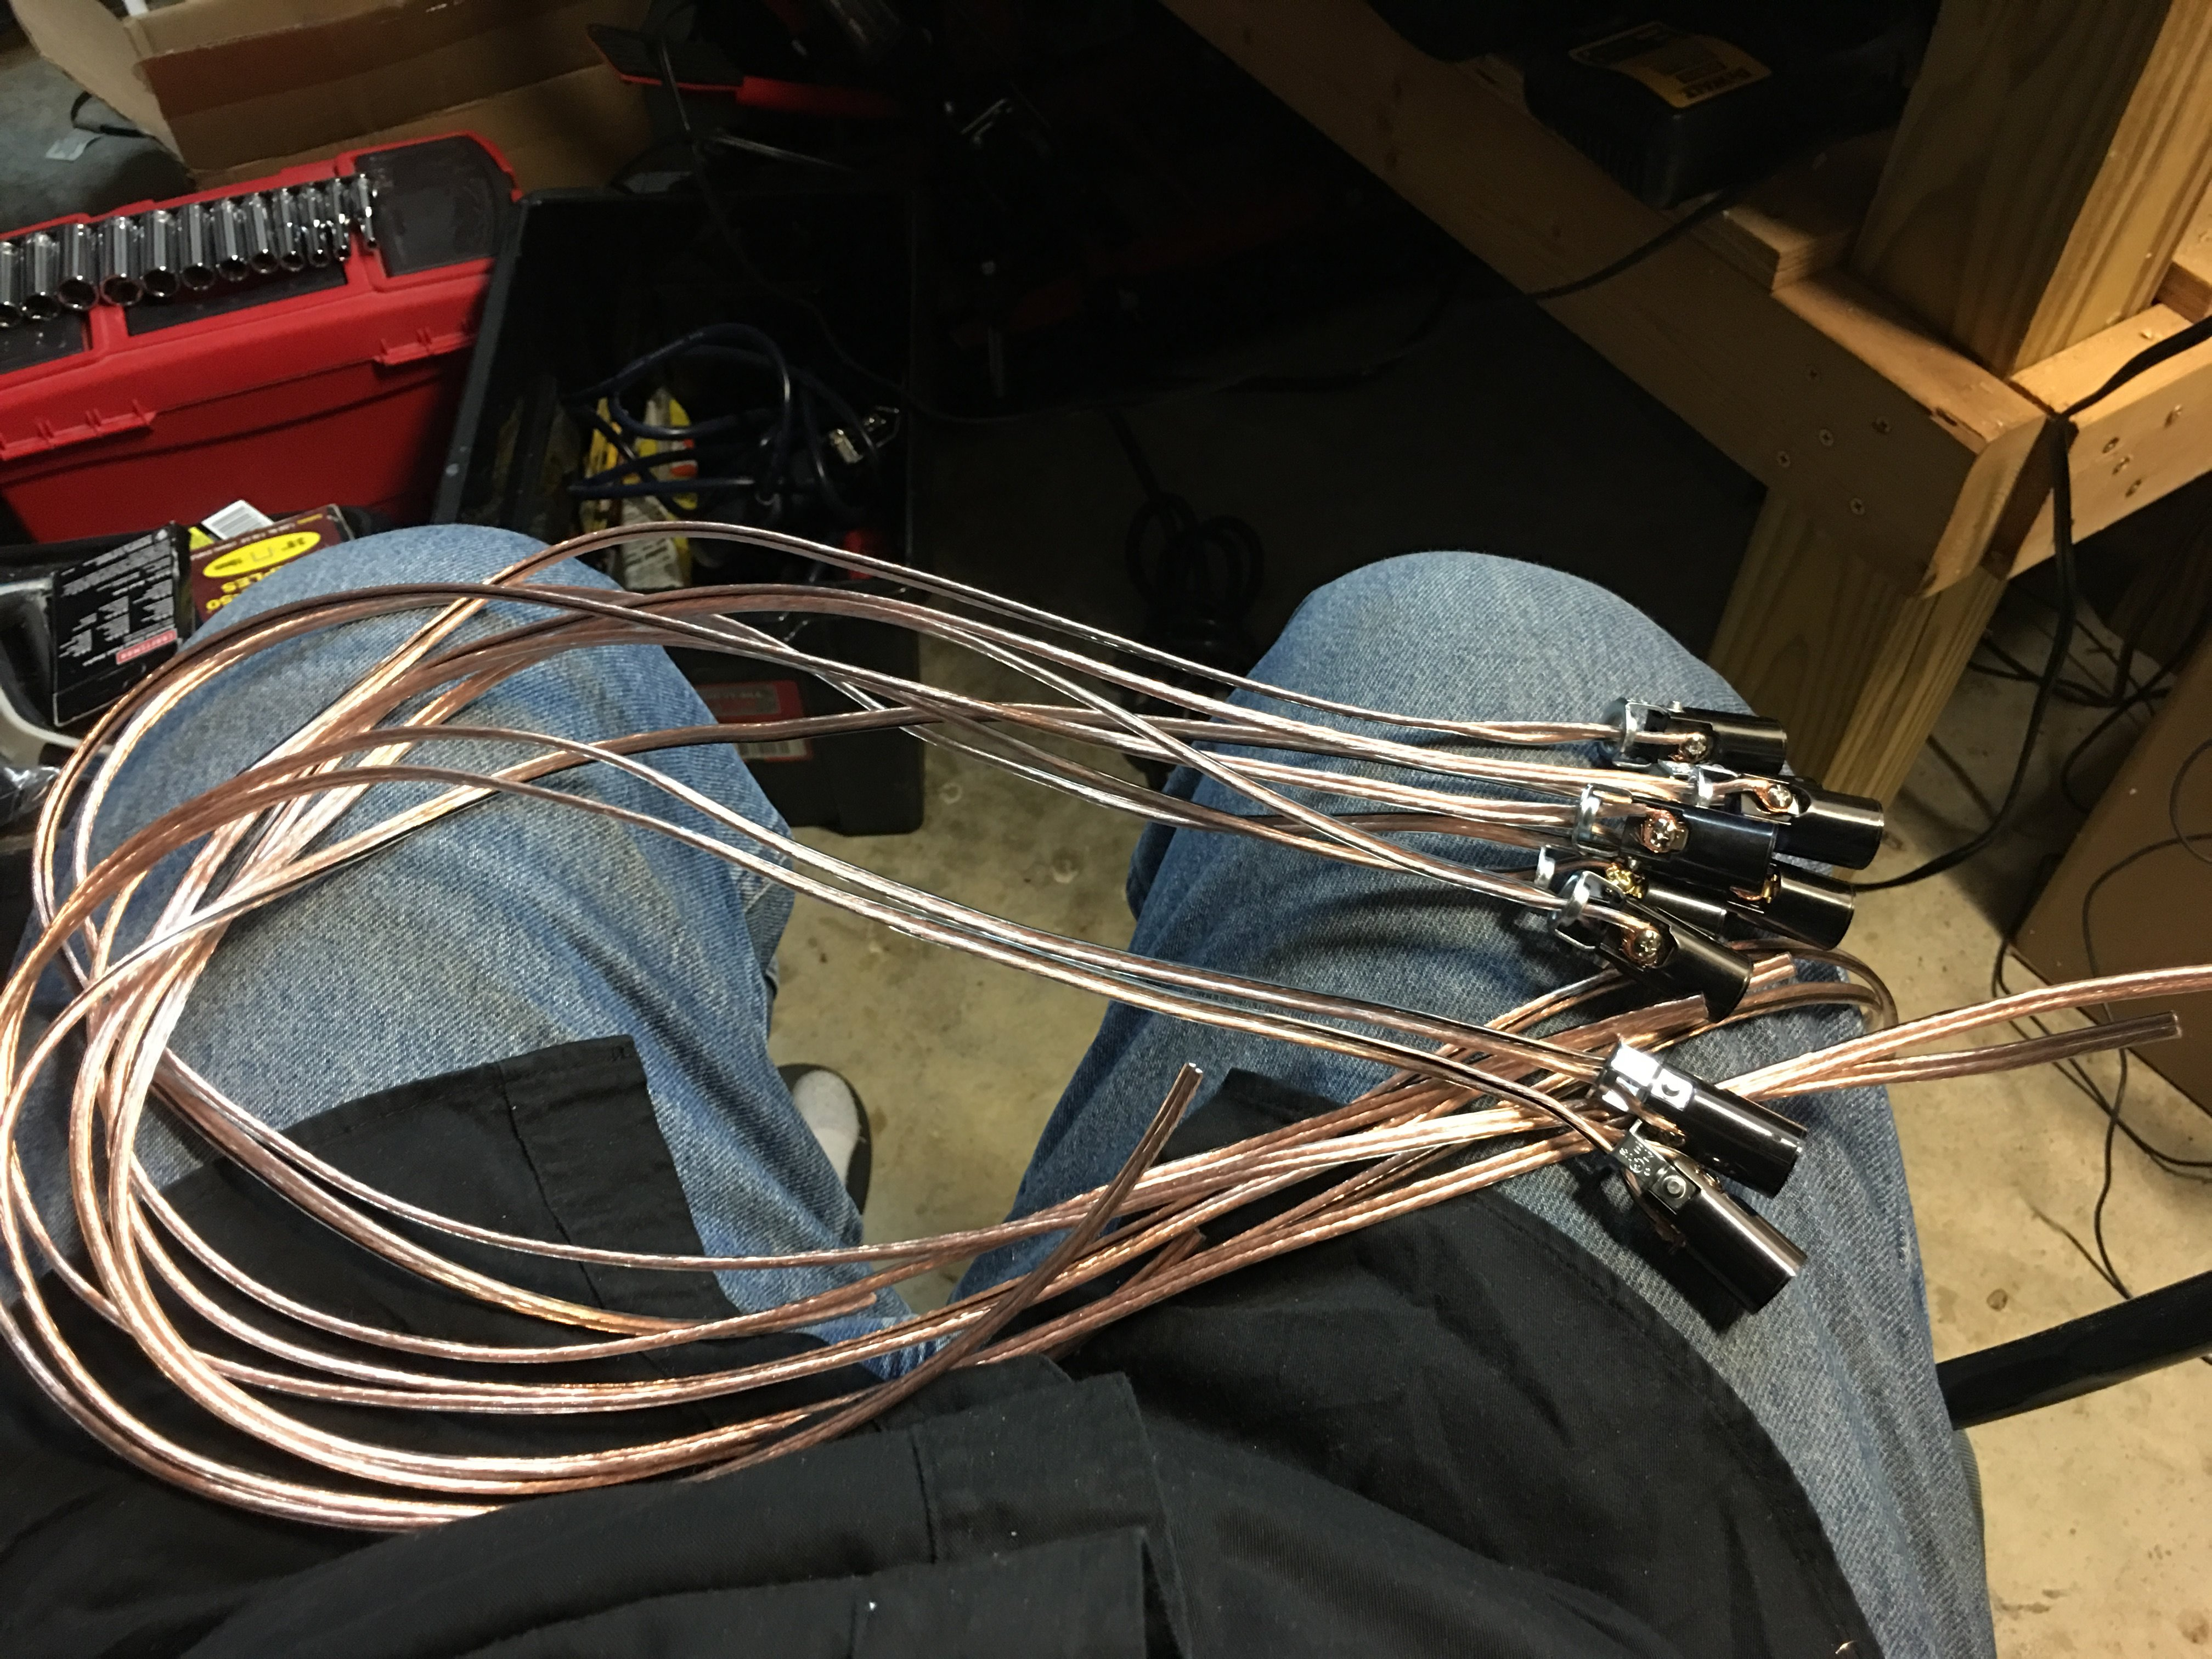 Picture of Cut and Attach Wires